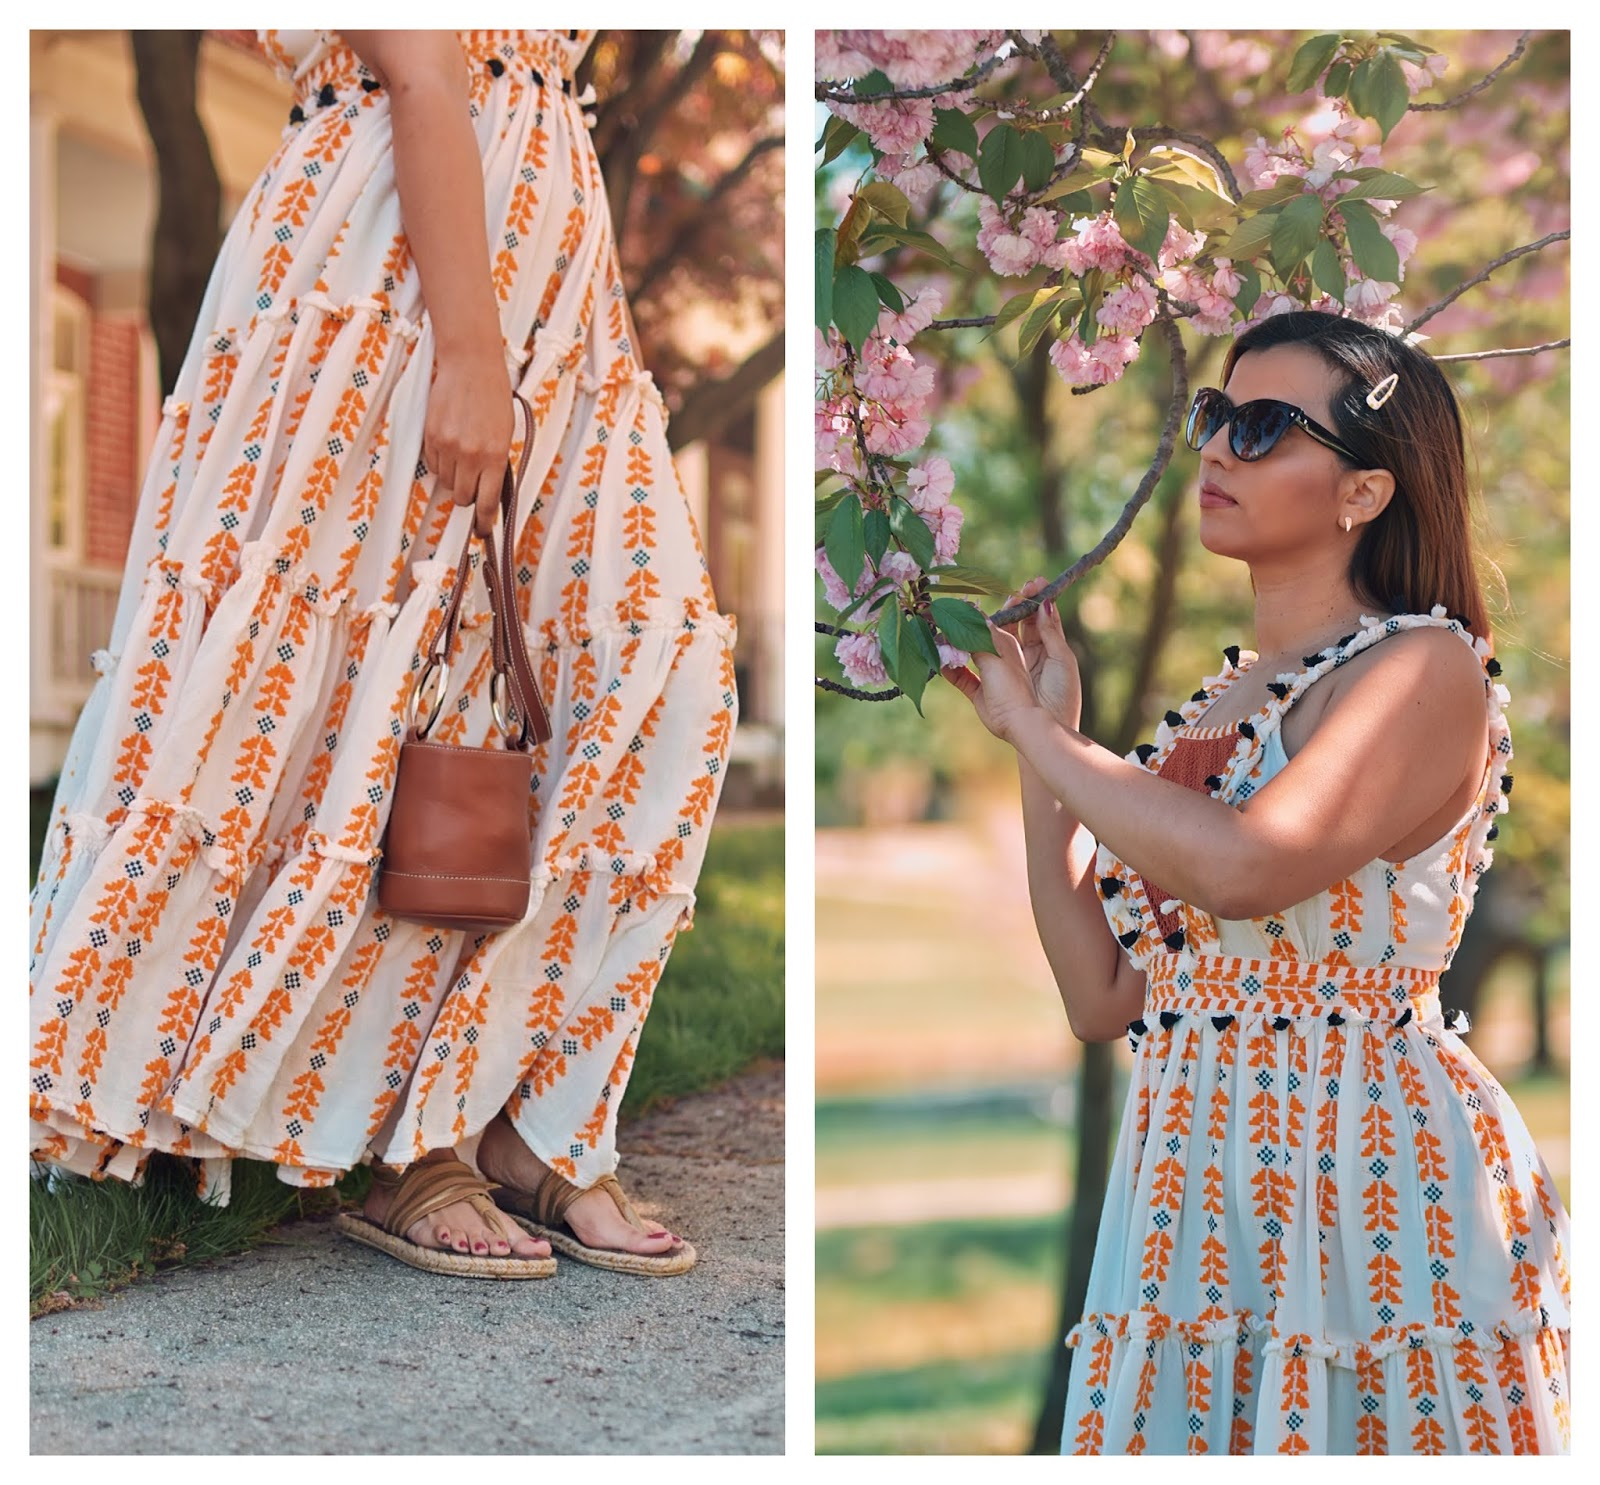 Llegamos al mes de mayo-rent the runway-mariestilo-primavera-dcblogger-dress-bolsos-designer bag-